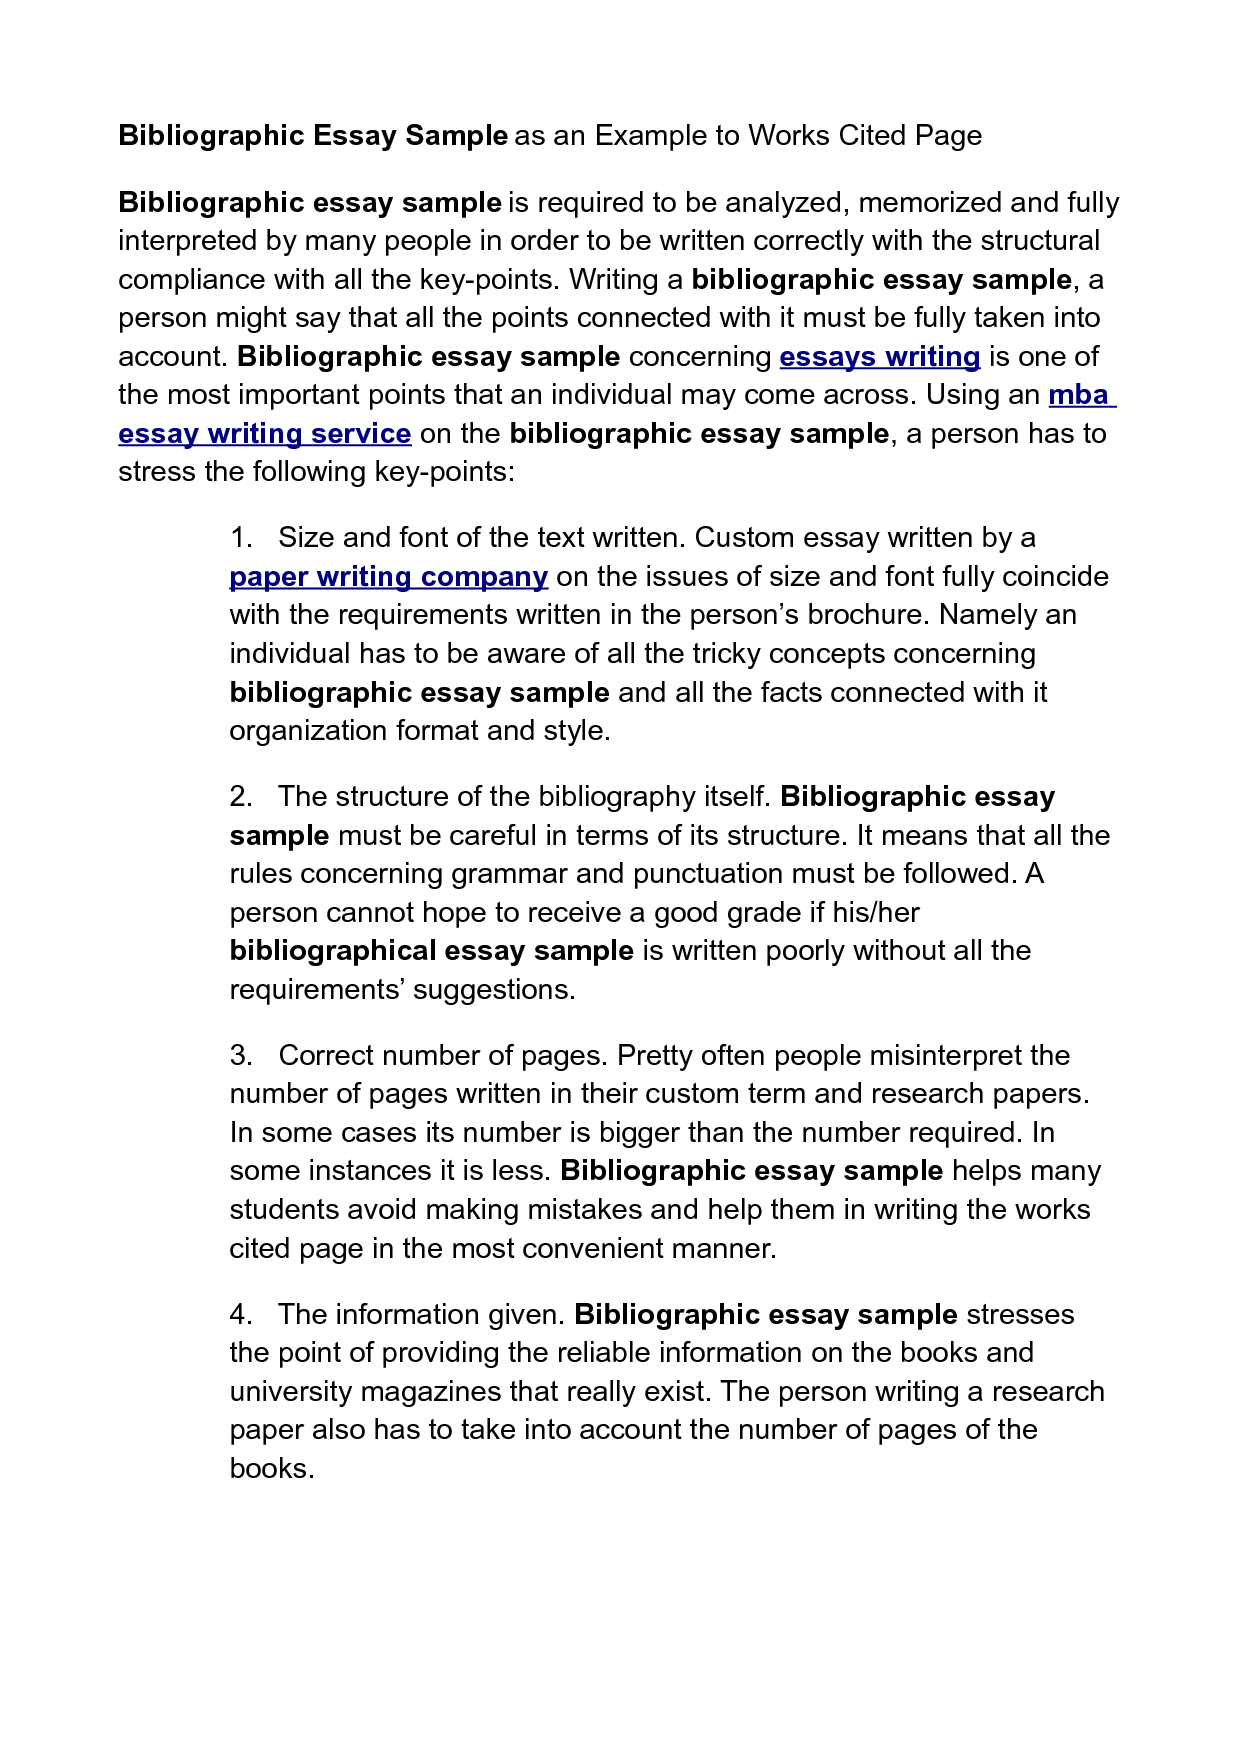 018 How To Cite An Essay Example Sample Persuasive With Works Cited Of Mla L Archaicawful In A Textbook Within Book Apa 8 Full